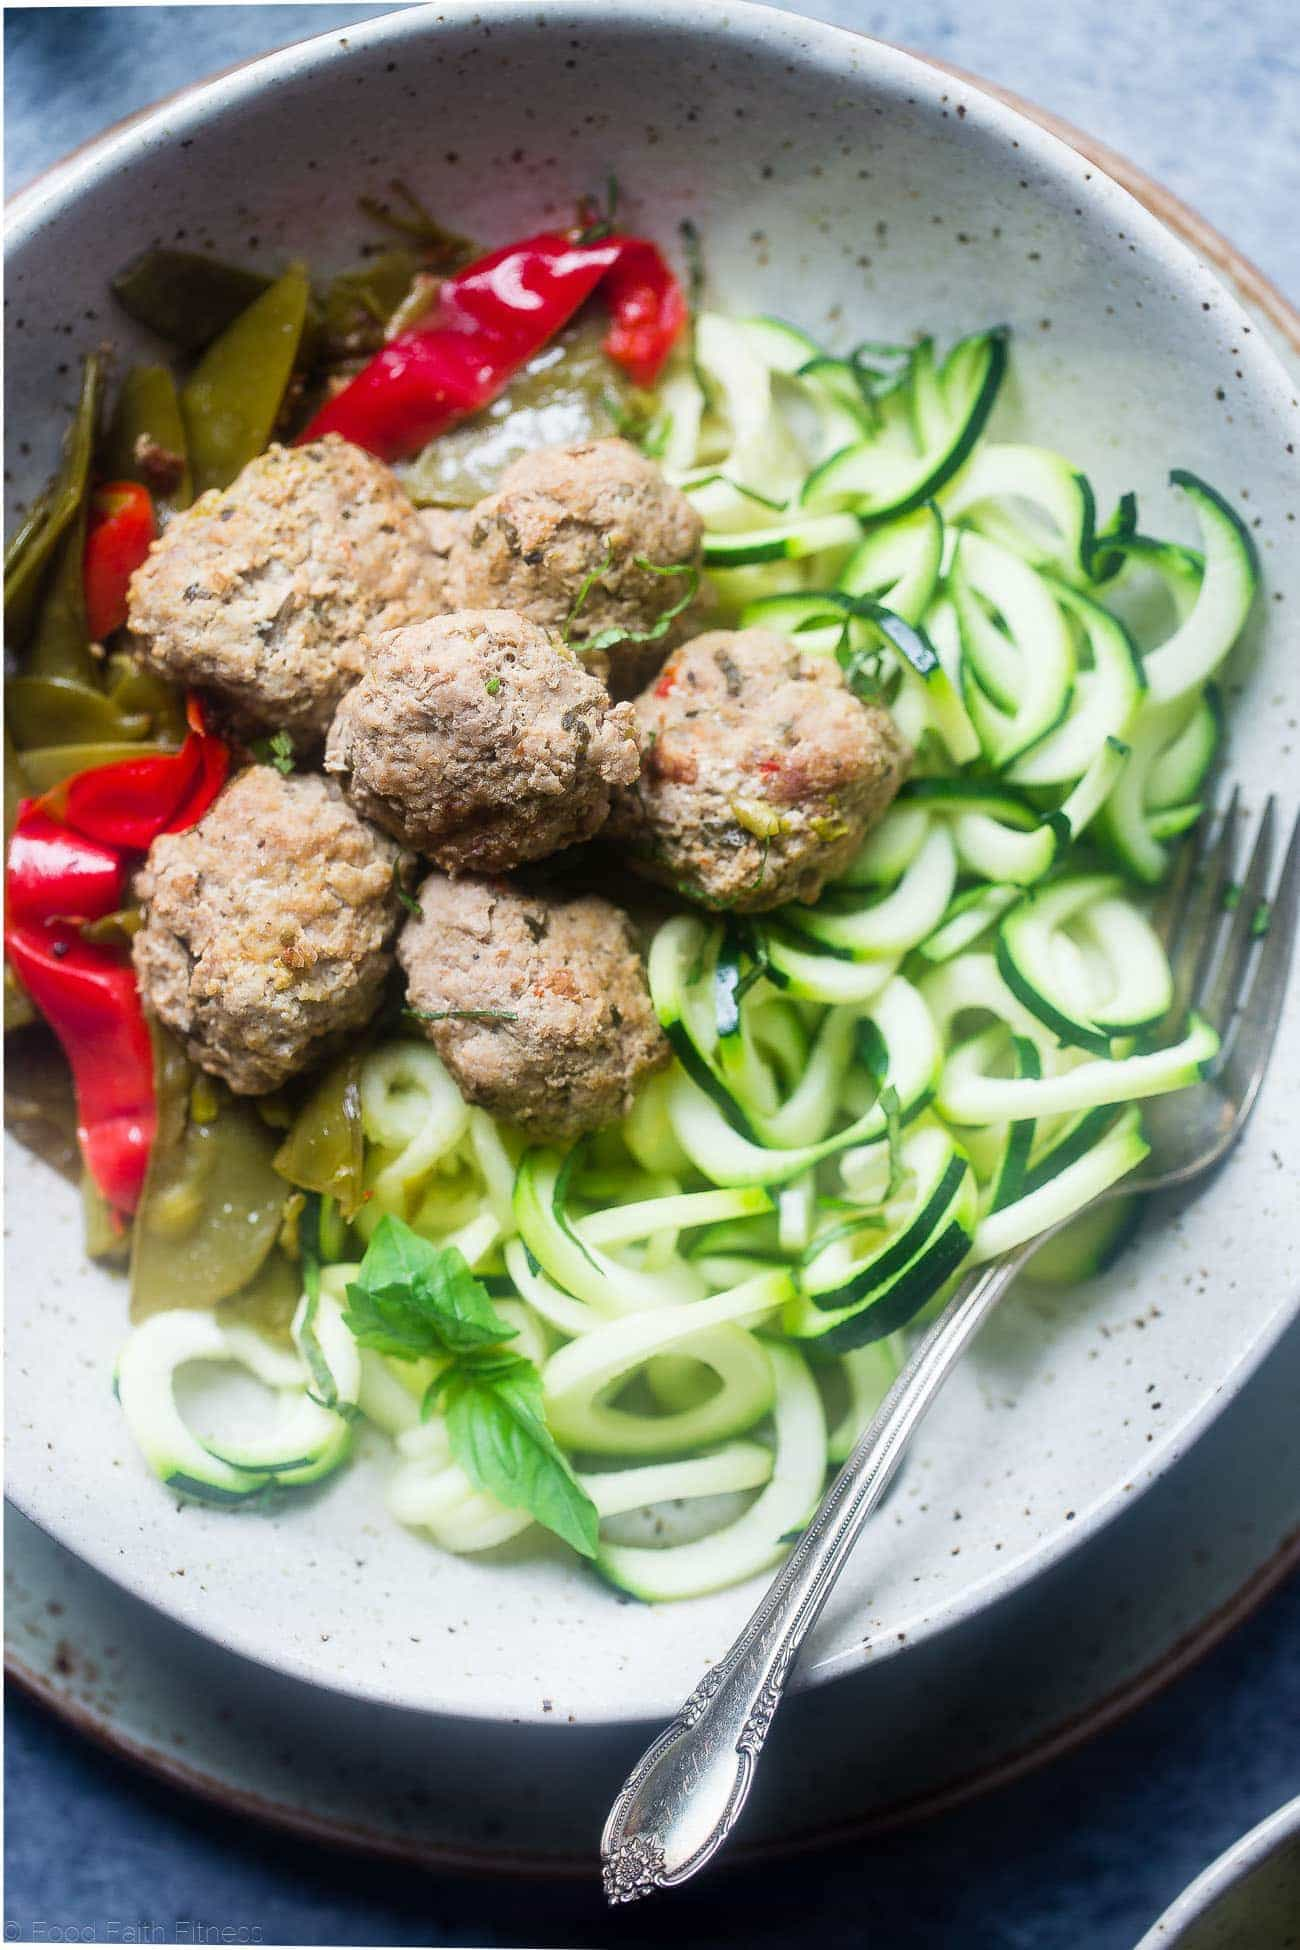 Easy Paleo Italian Meatballs in the Instant Pot - This low carb paleo meatball recipe tastes like pasta primavera! They're a healthy, gluten free and paleo spring meal for only 300 calories!   Foodfaithfitness.com   @FoodFaithFit